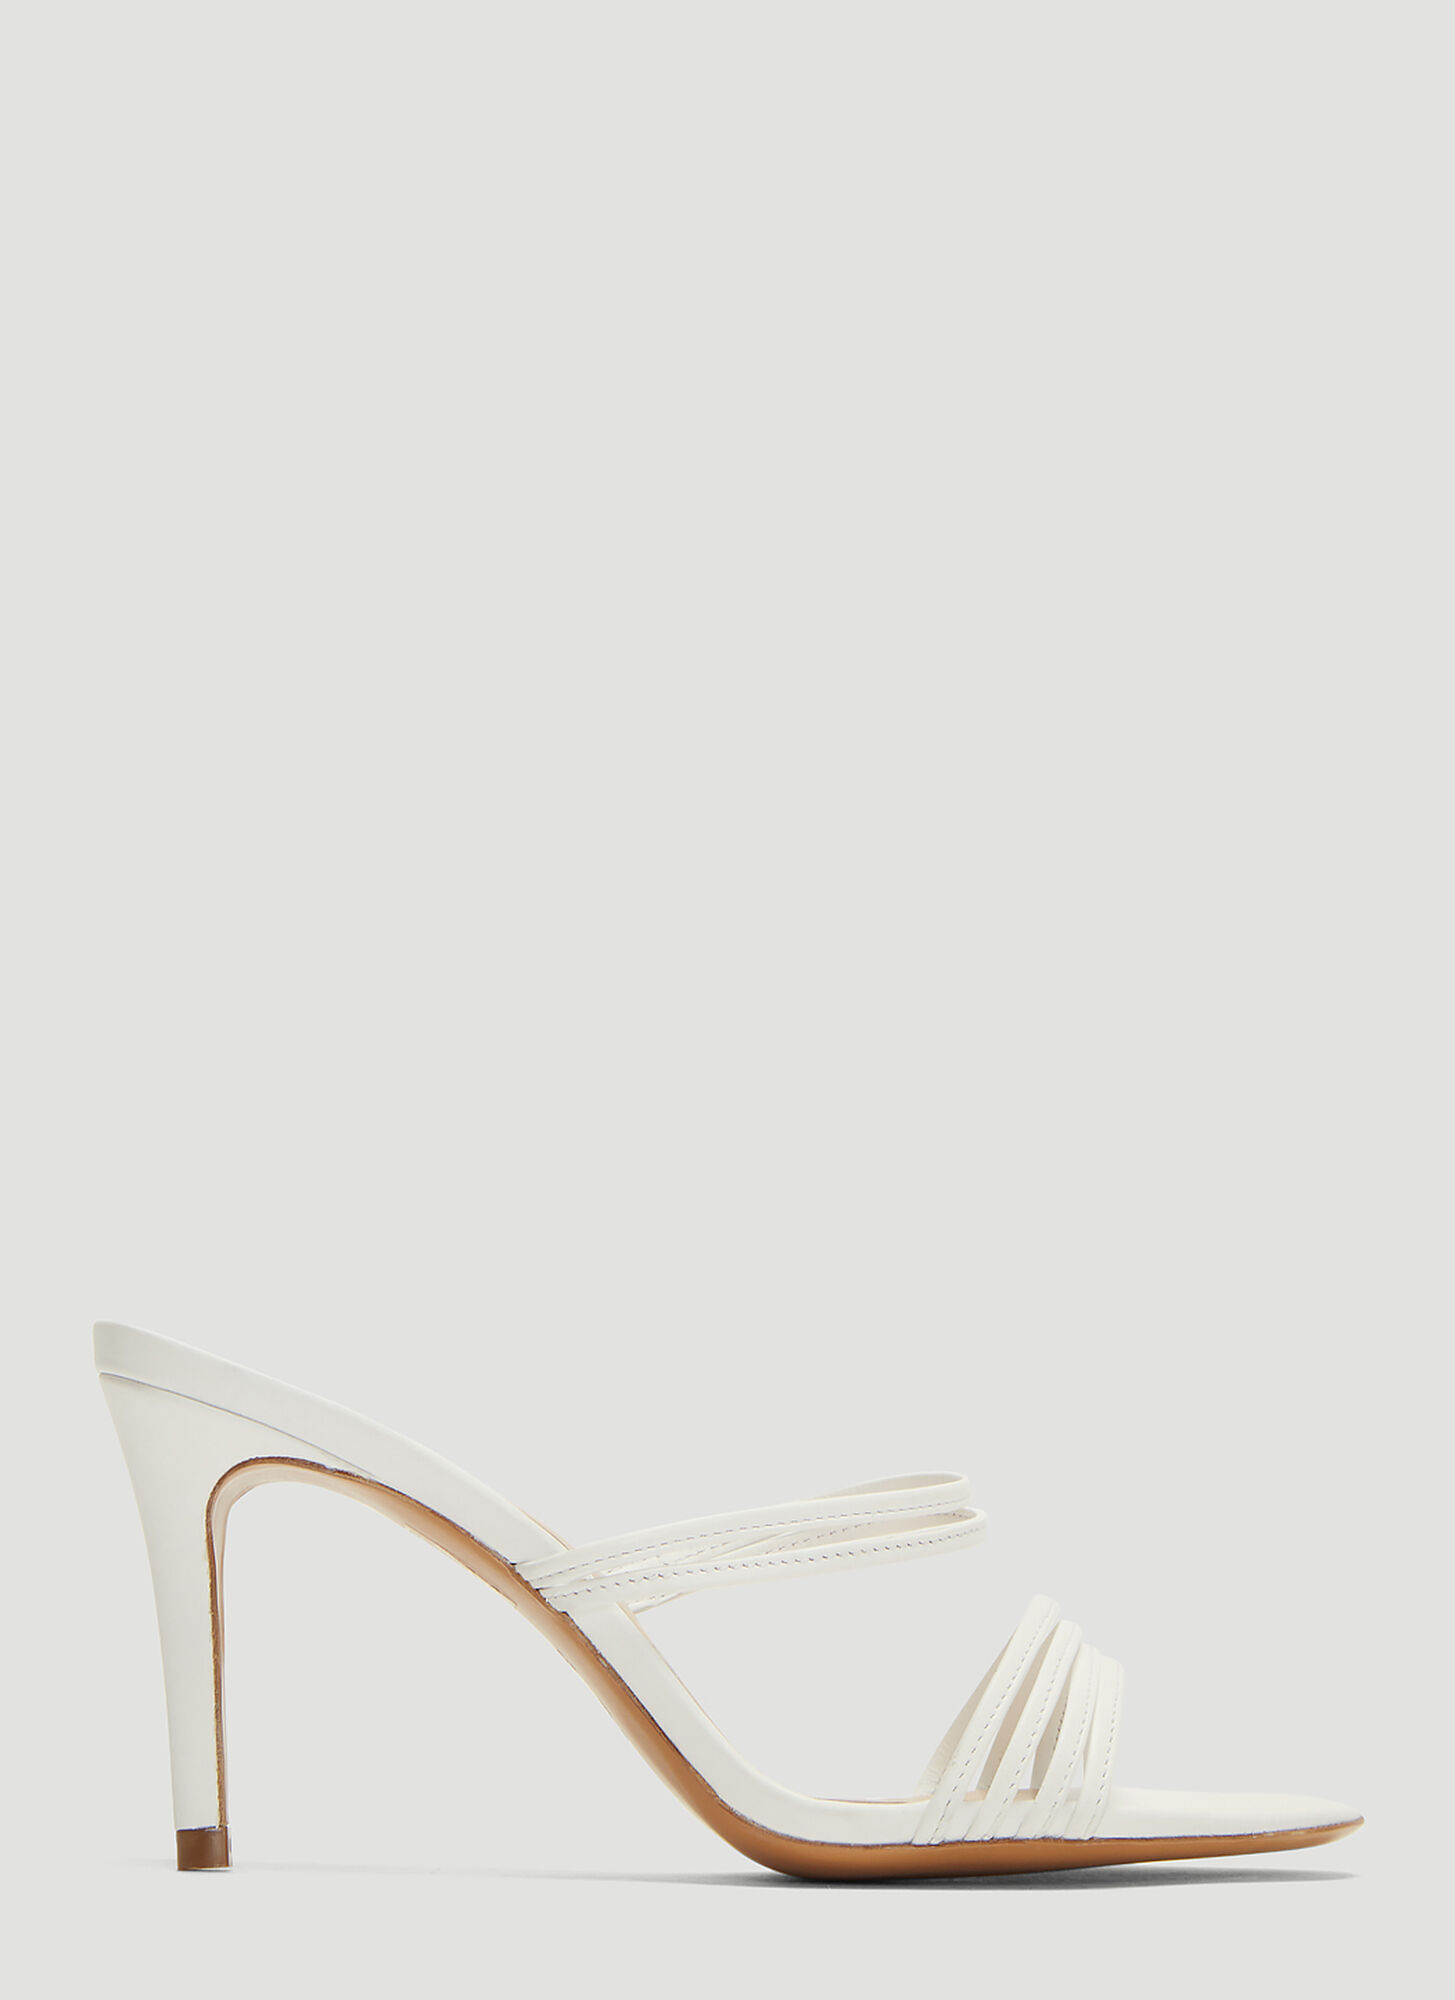 Kalda Simone Sandals in White